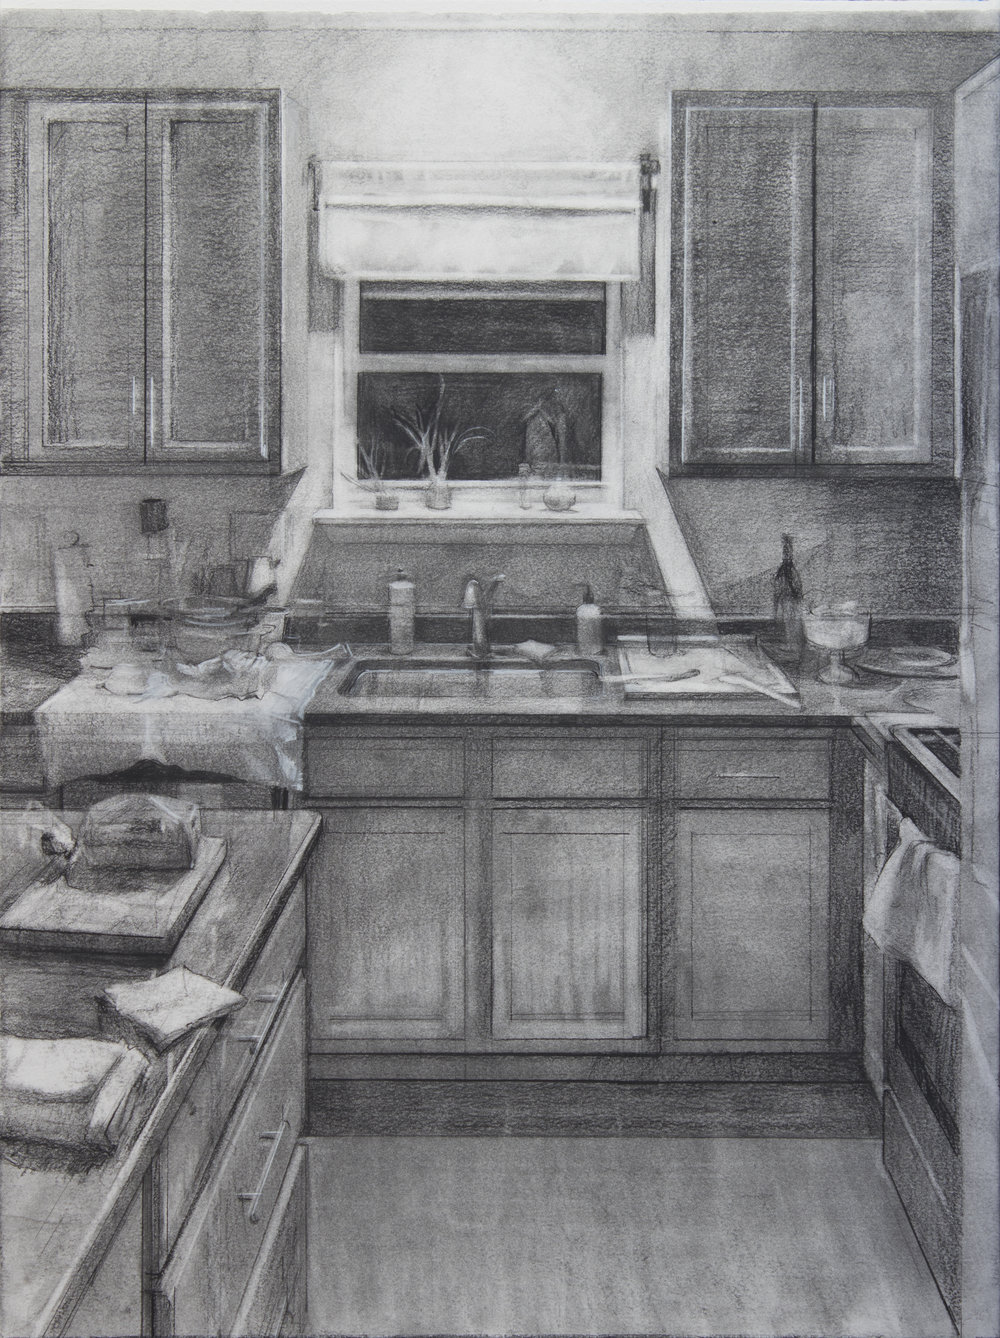 """Nighttime Clutter, Charcoal on Paper, 24"""" x 18"""", 2017"""